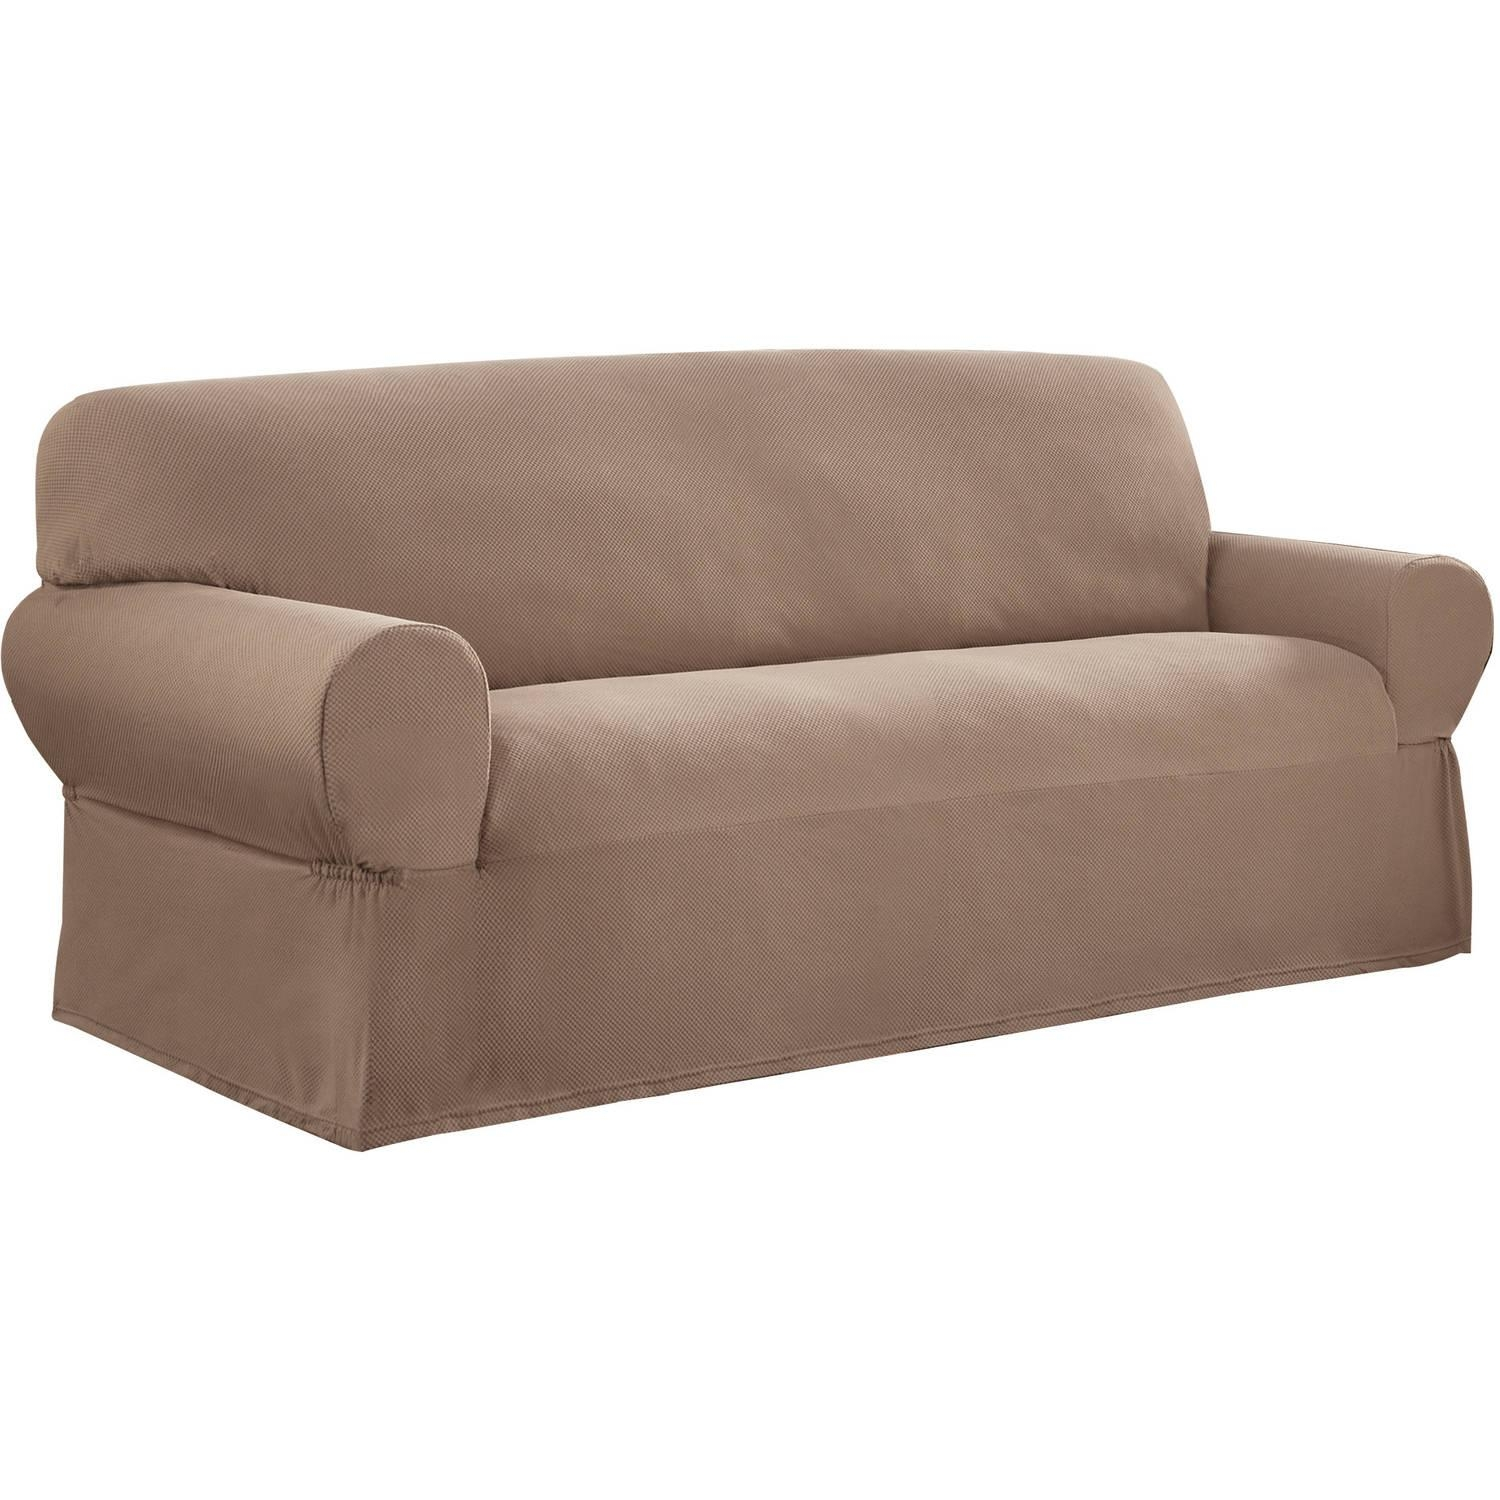 Sofas : Wonderful Slip Covers For Sofa Oversized Sofa Covers Sofa With Large Sofa Slipcovers (Image 21 of 23)